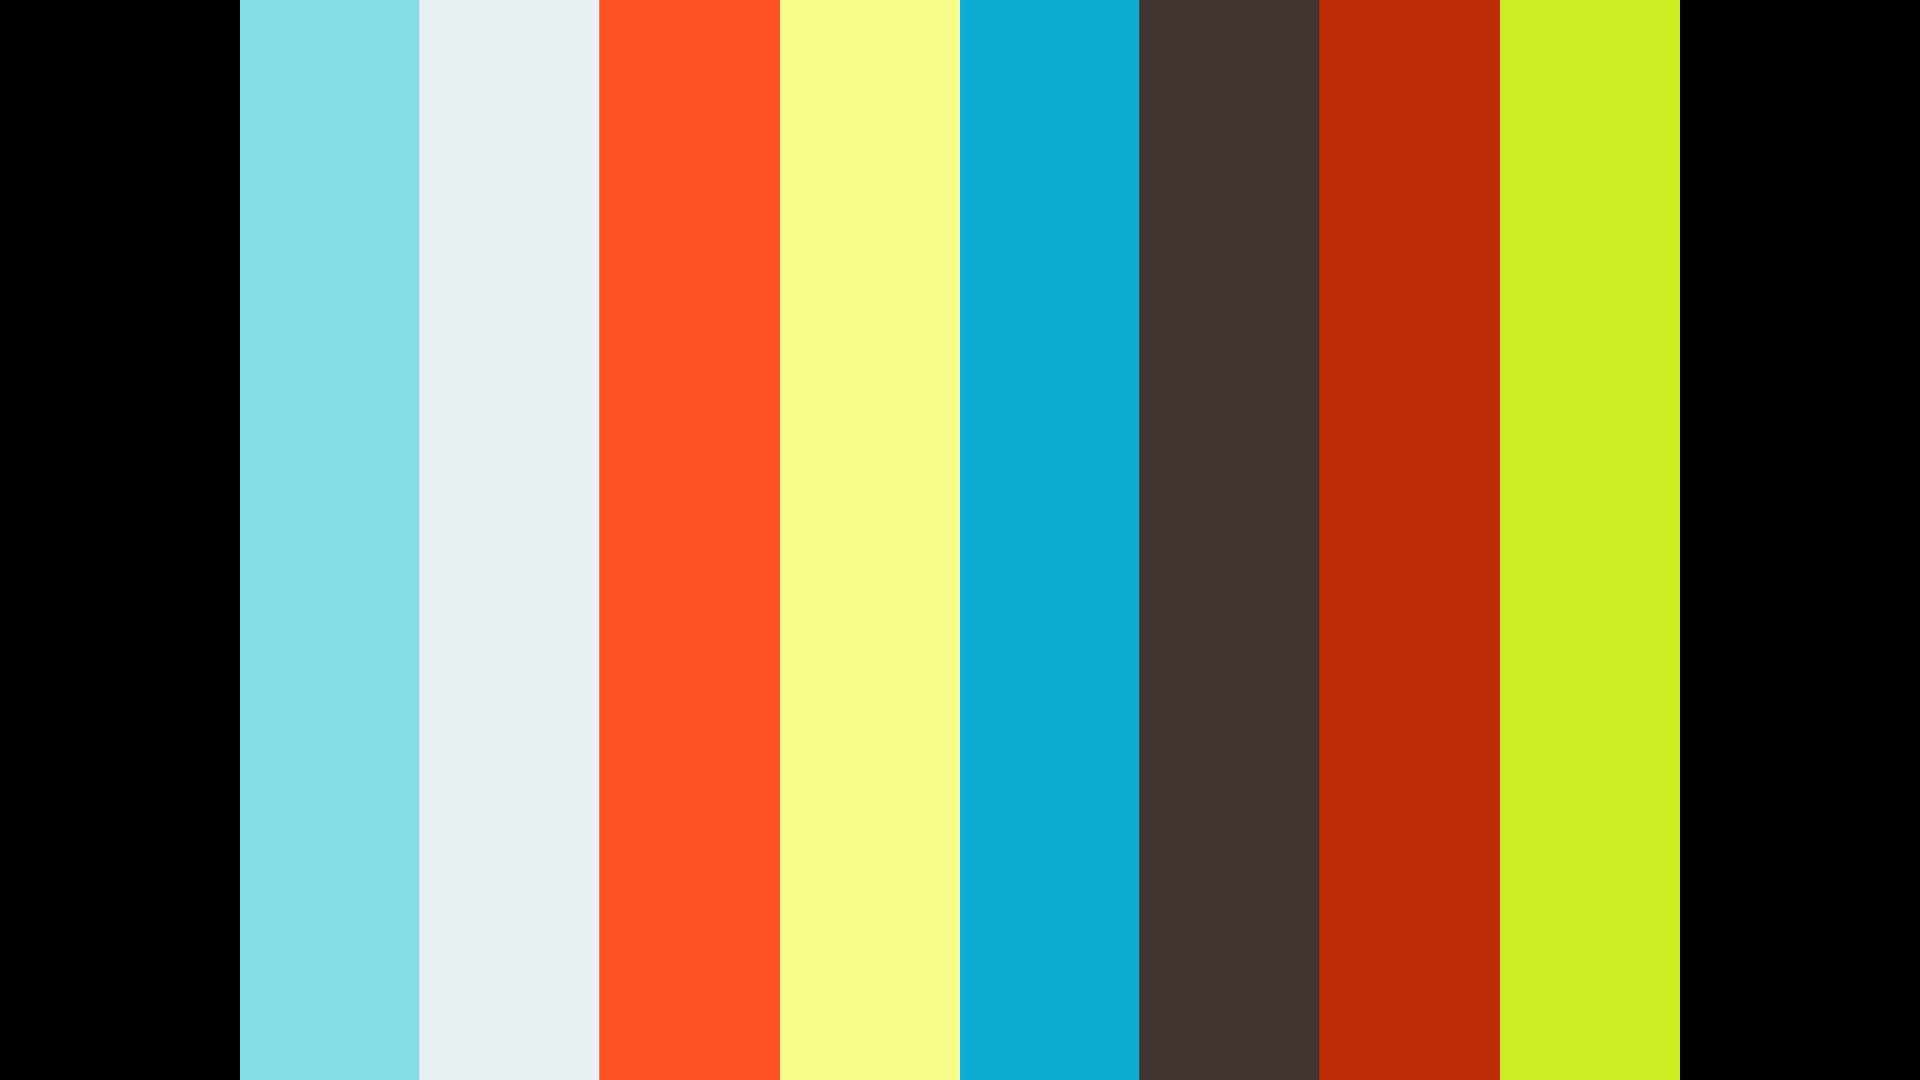 Sherweb at ChannelNext East 2019